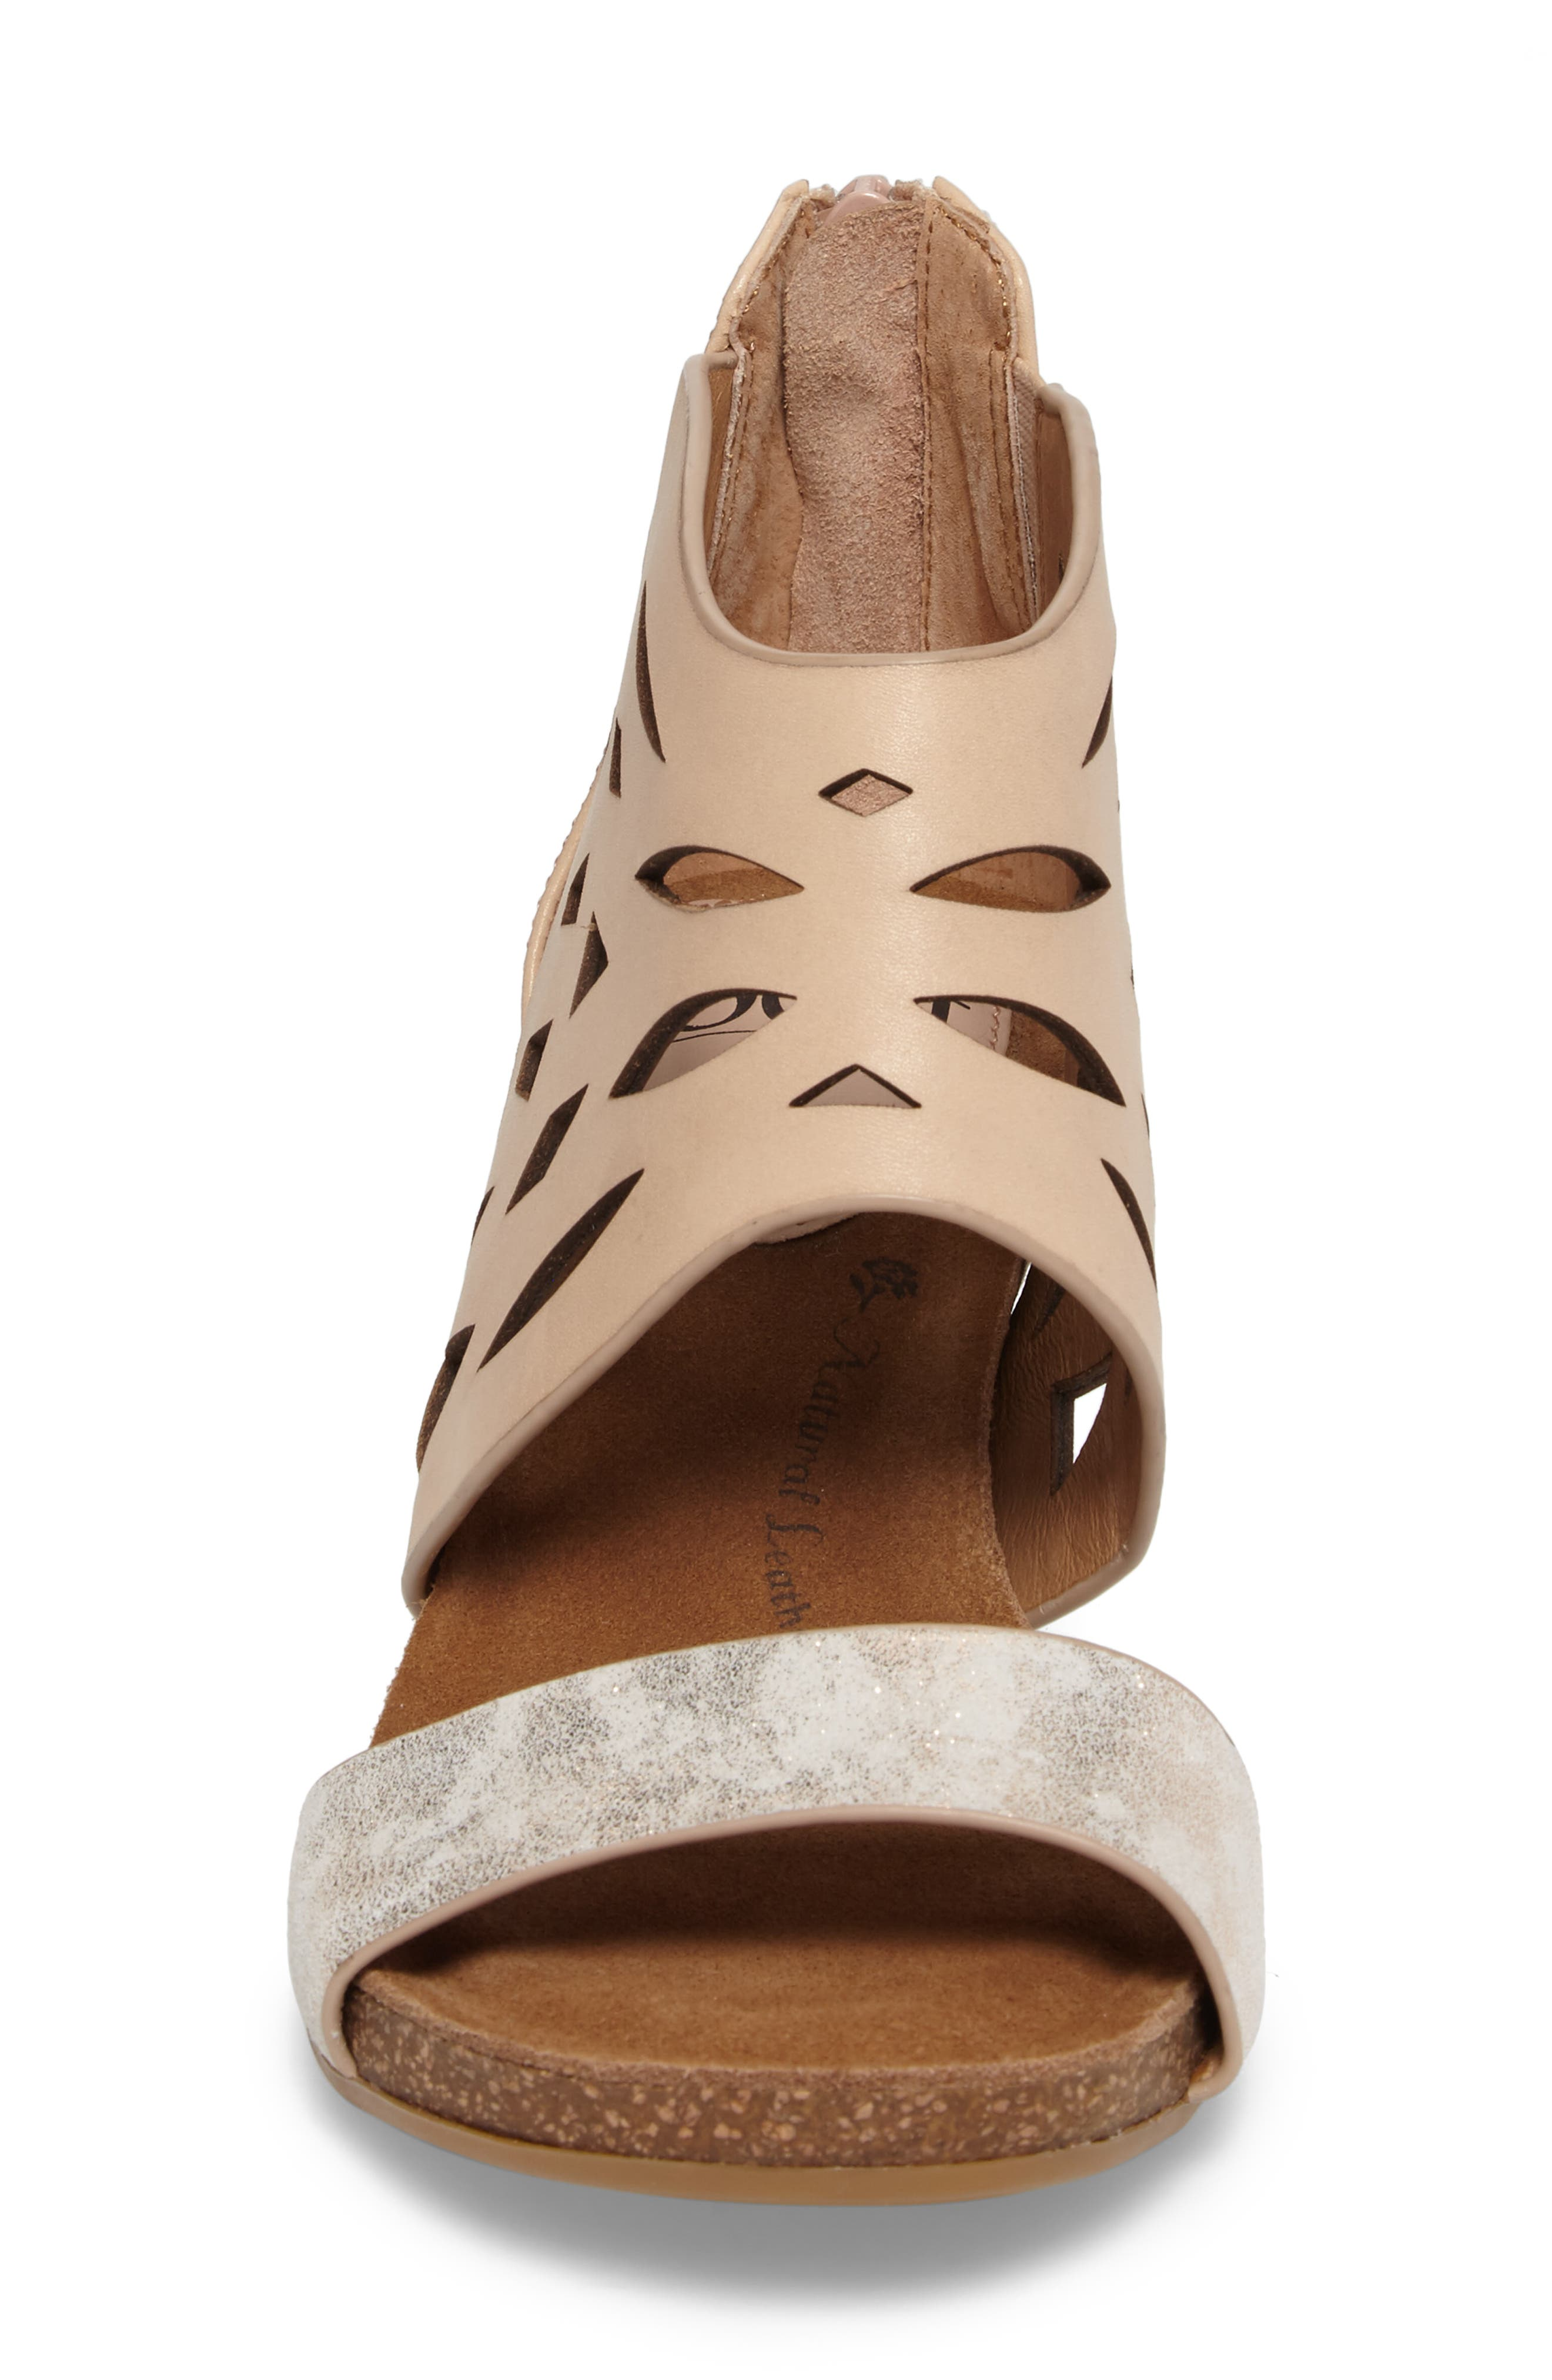 Mystic Perforated Wedge Sandal,                             Alternate thumbnail 4, color,                             Blush/ Ivory Leather